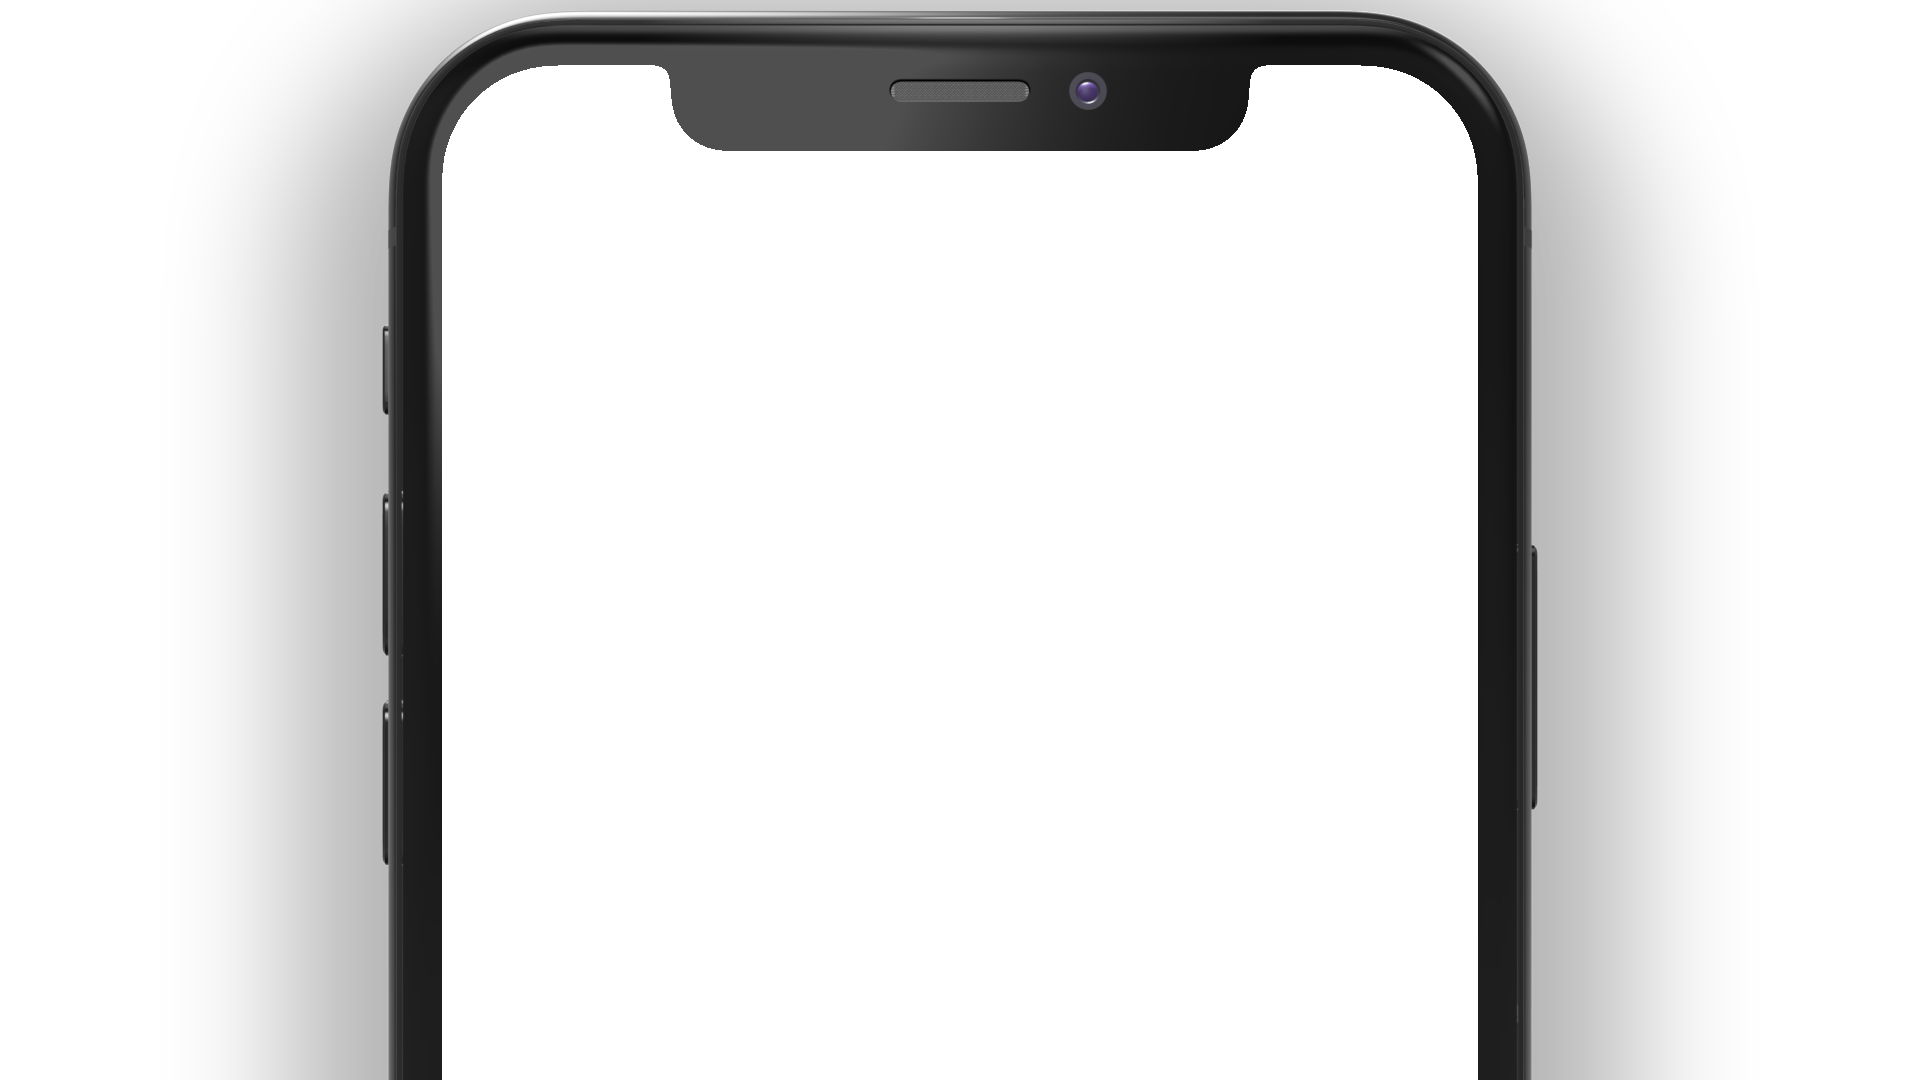 iPhone PNG front view